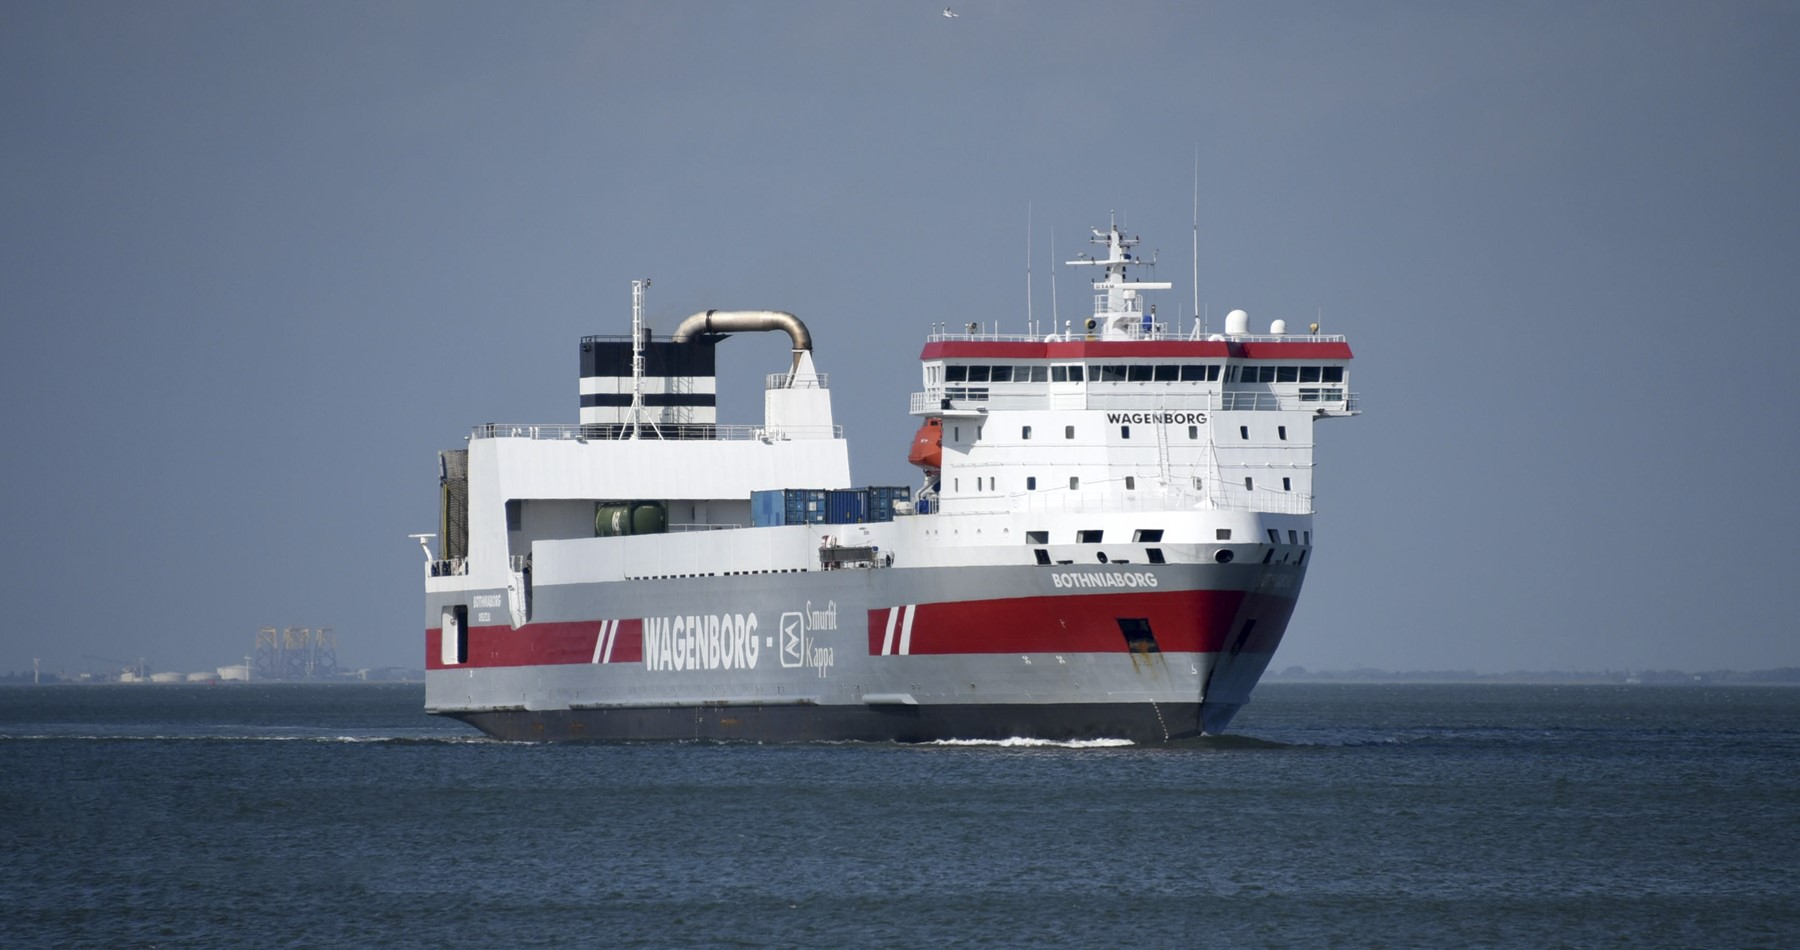 Wagenborg strengthens her position in the greater Stockholm area with expanded RORO liner service